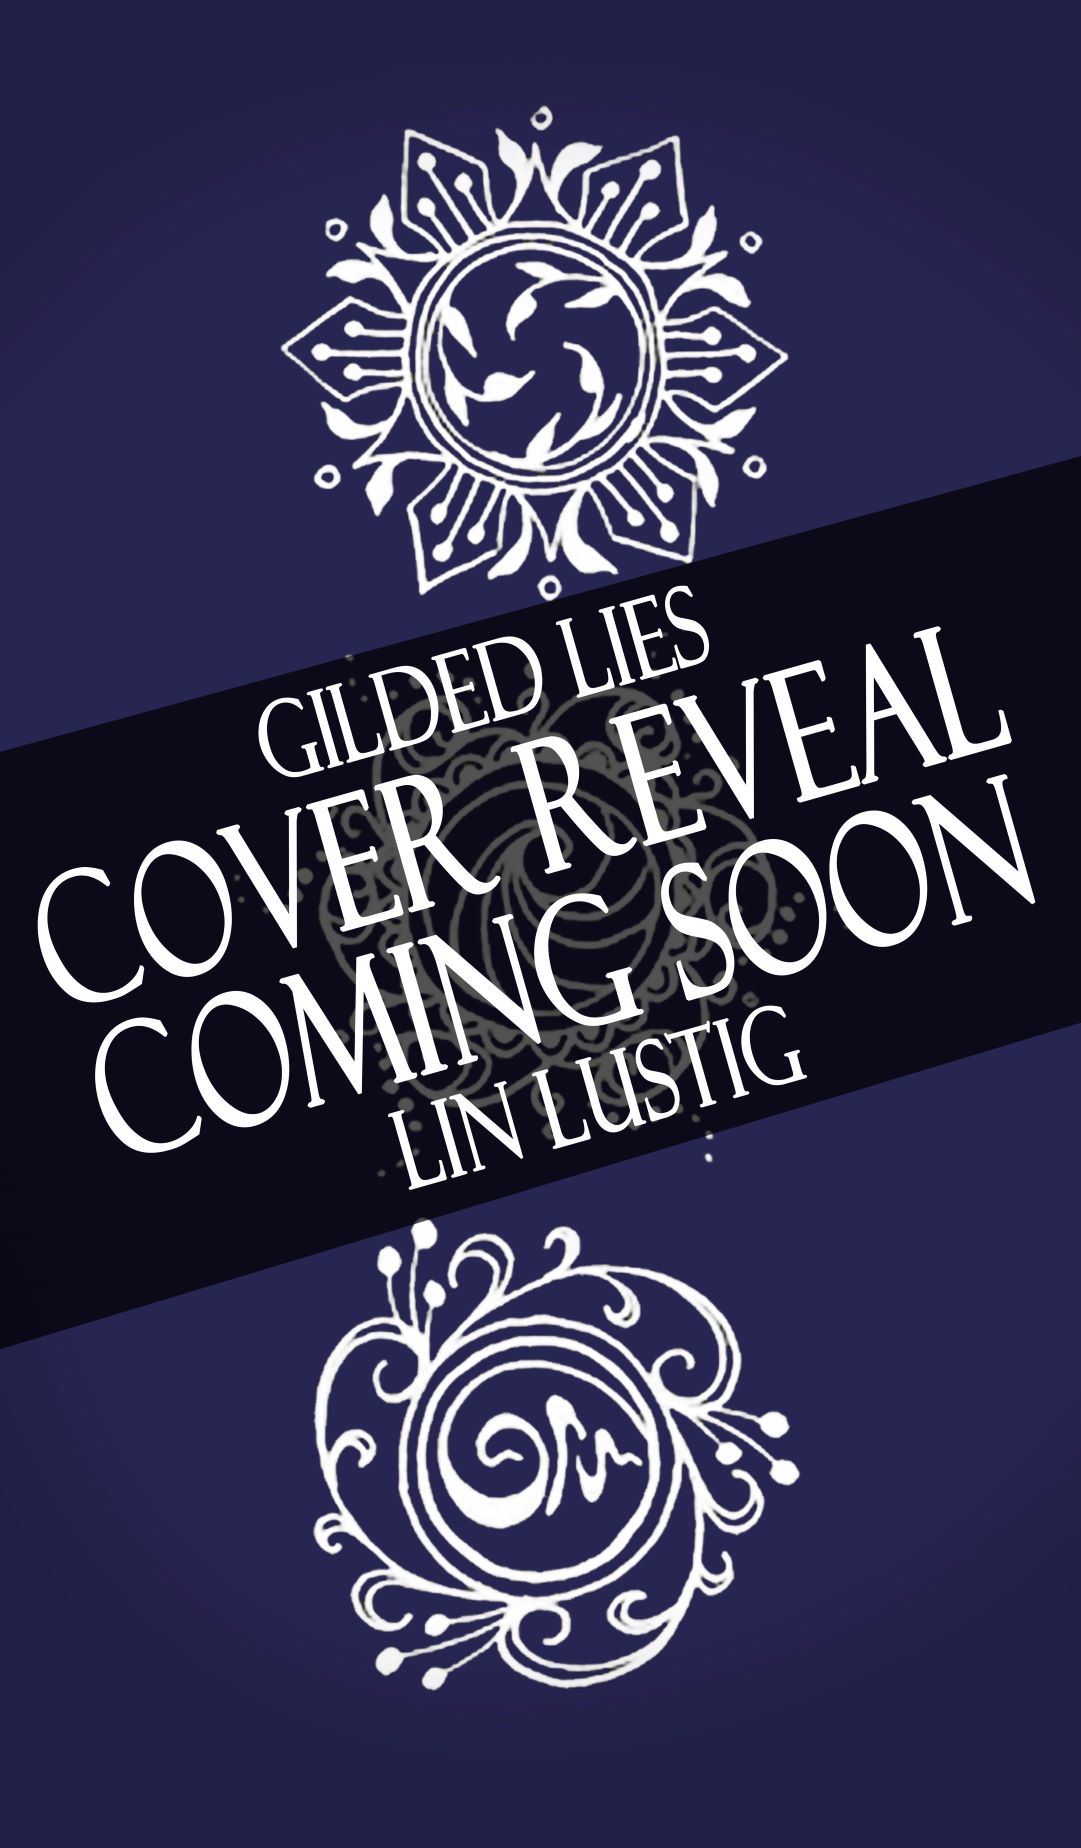 GL cover reveal soon promo2mb